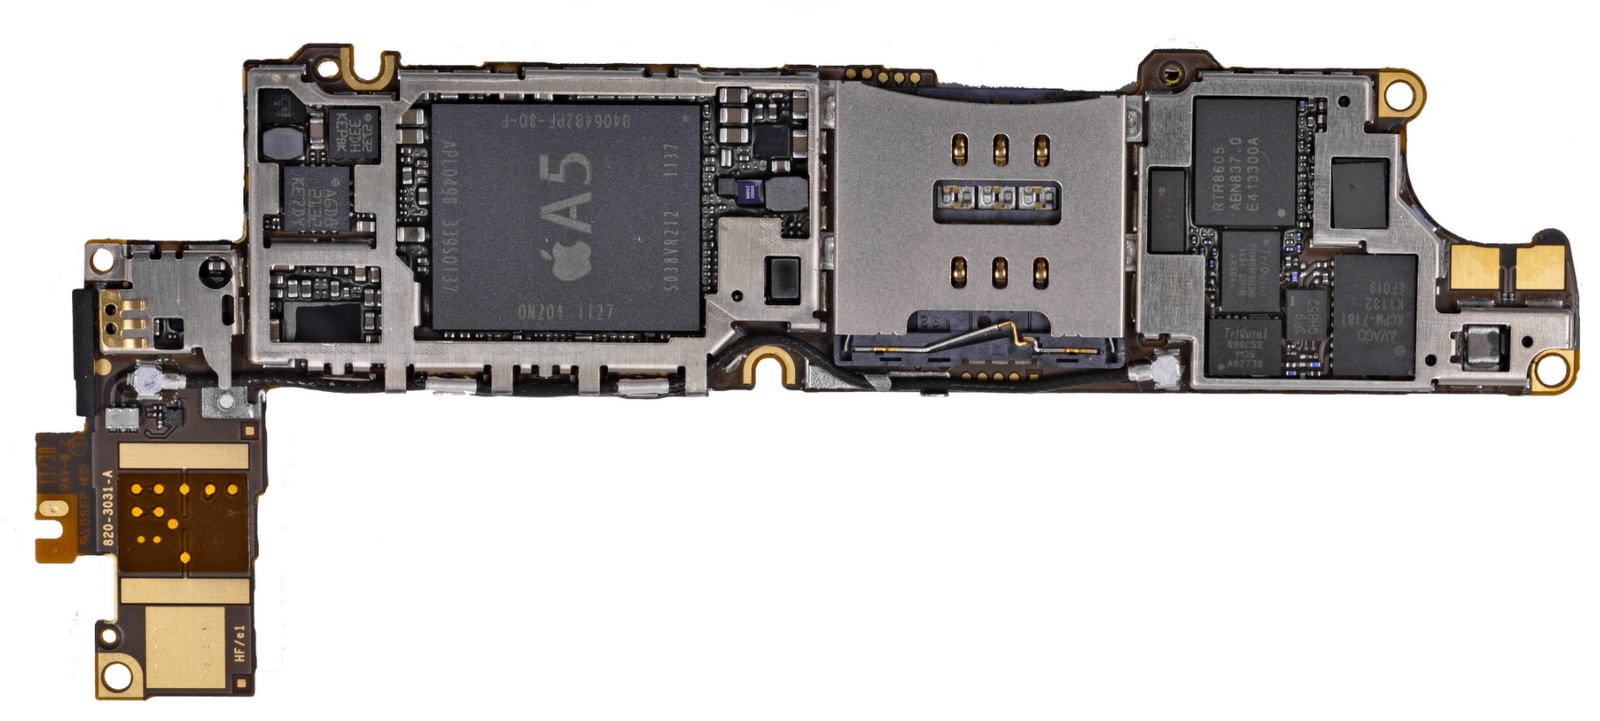 iphone 5 motherboard pictured